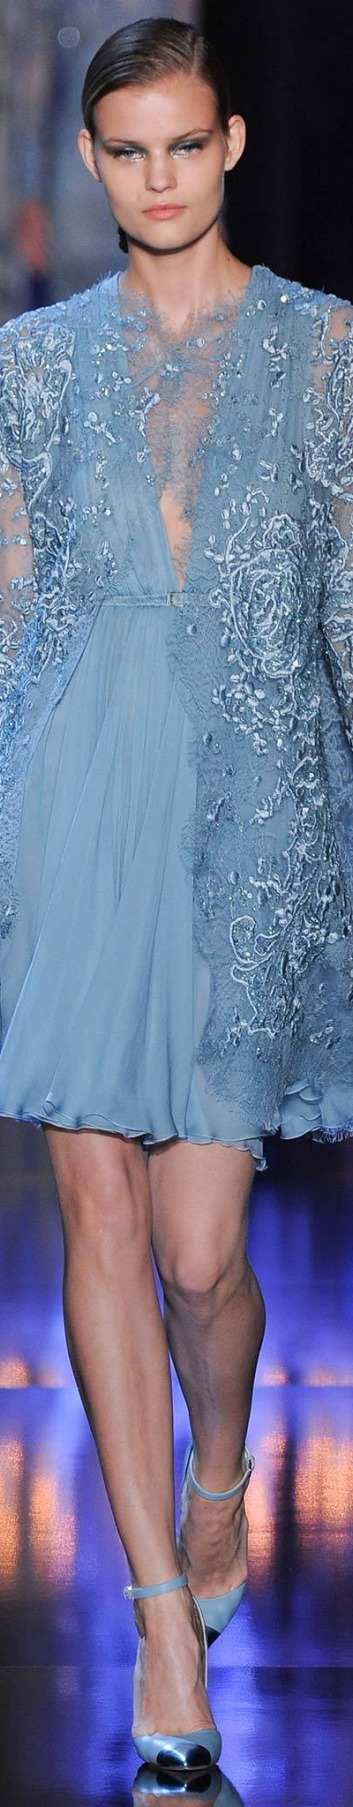 Elie Saab - Fall 2014 Ready-to-Wear {Pin via James Mitchell, Repin by Marguerite Burrill}